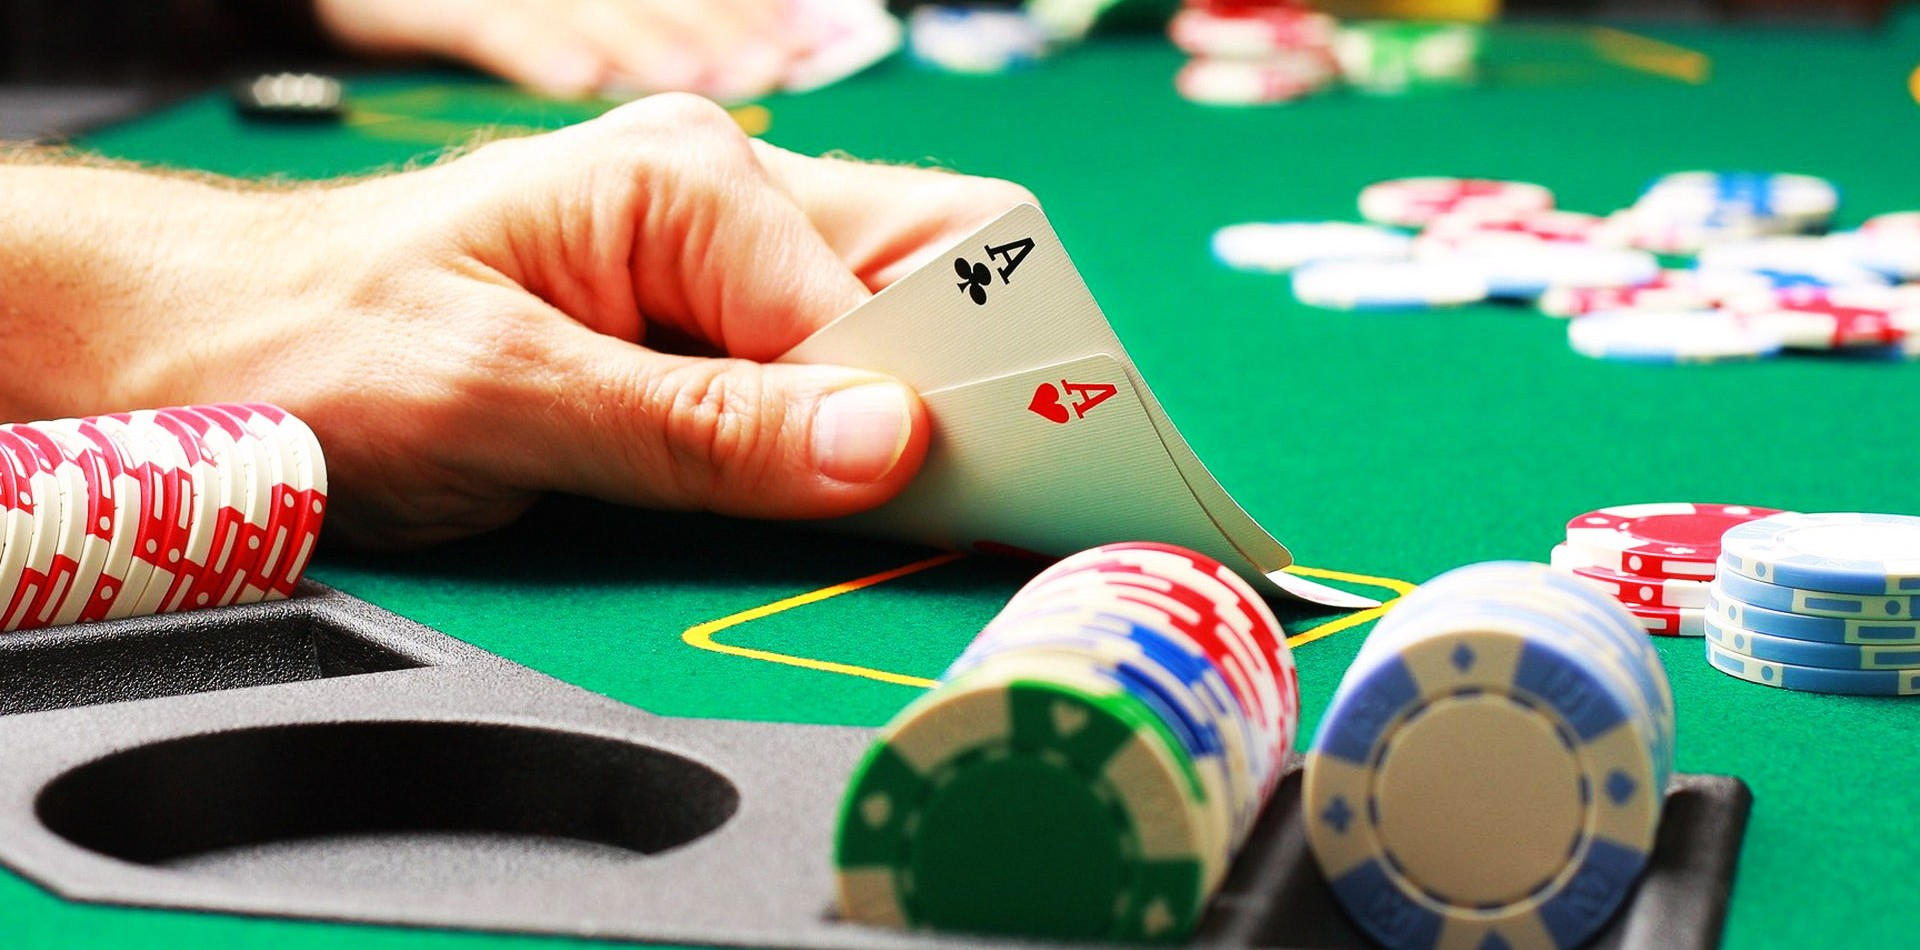 Casino poker en ligne how to win on computer roulette